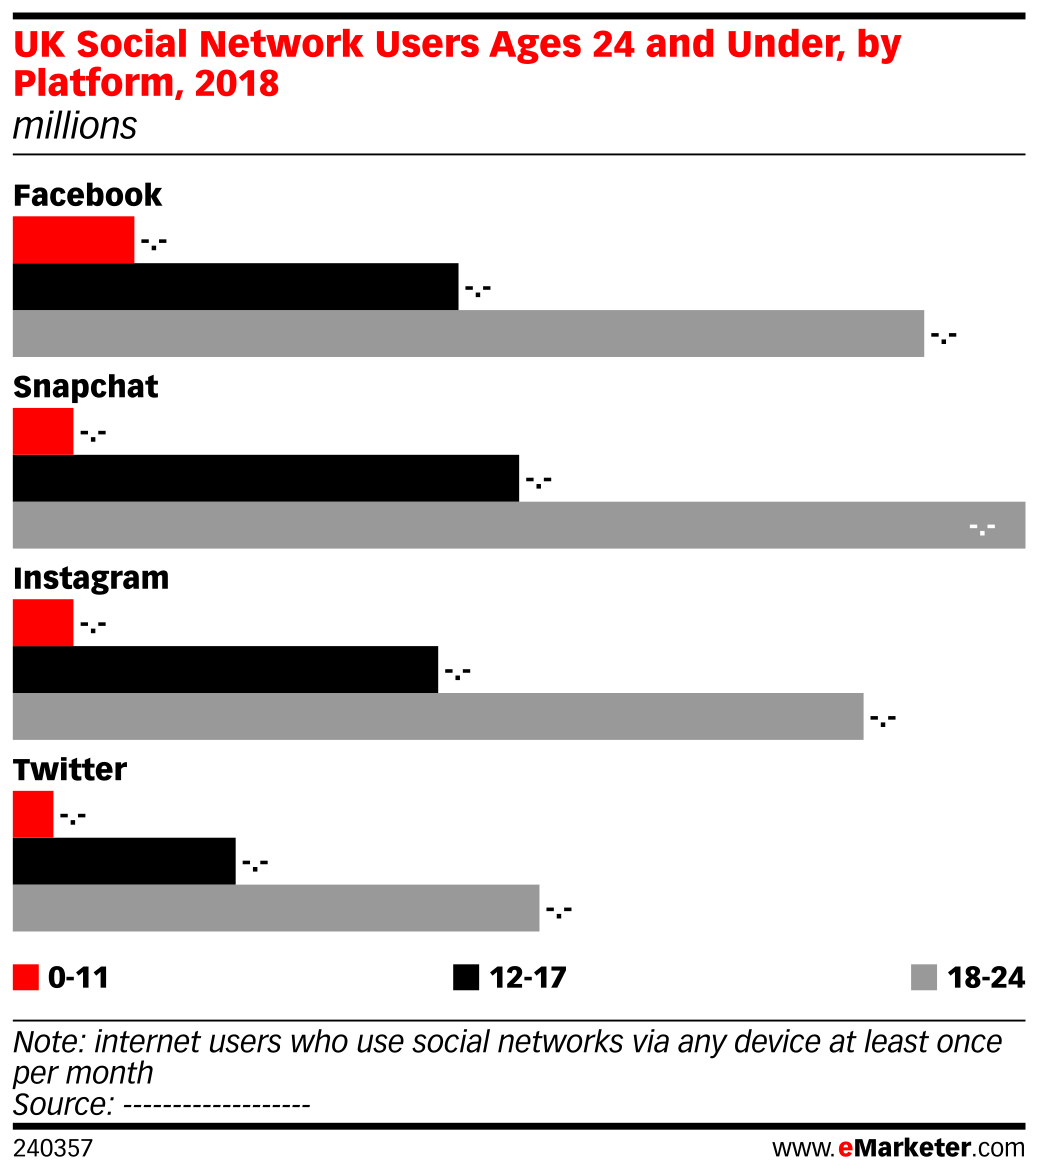 UK Social Network Users Ages 24 and Under, by Platform, 2018 (millions)